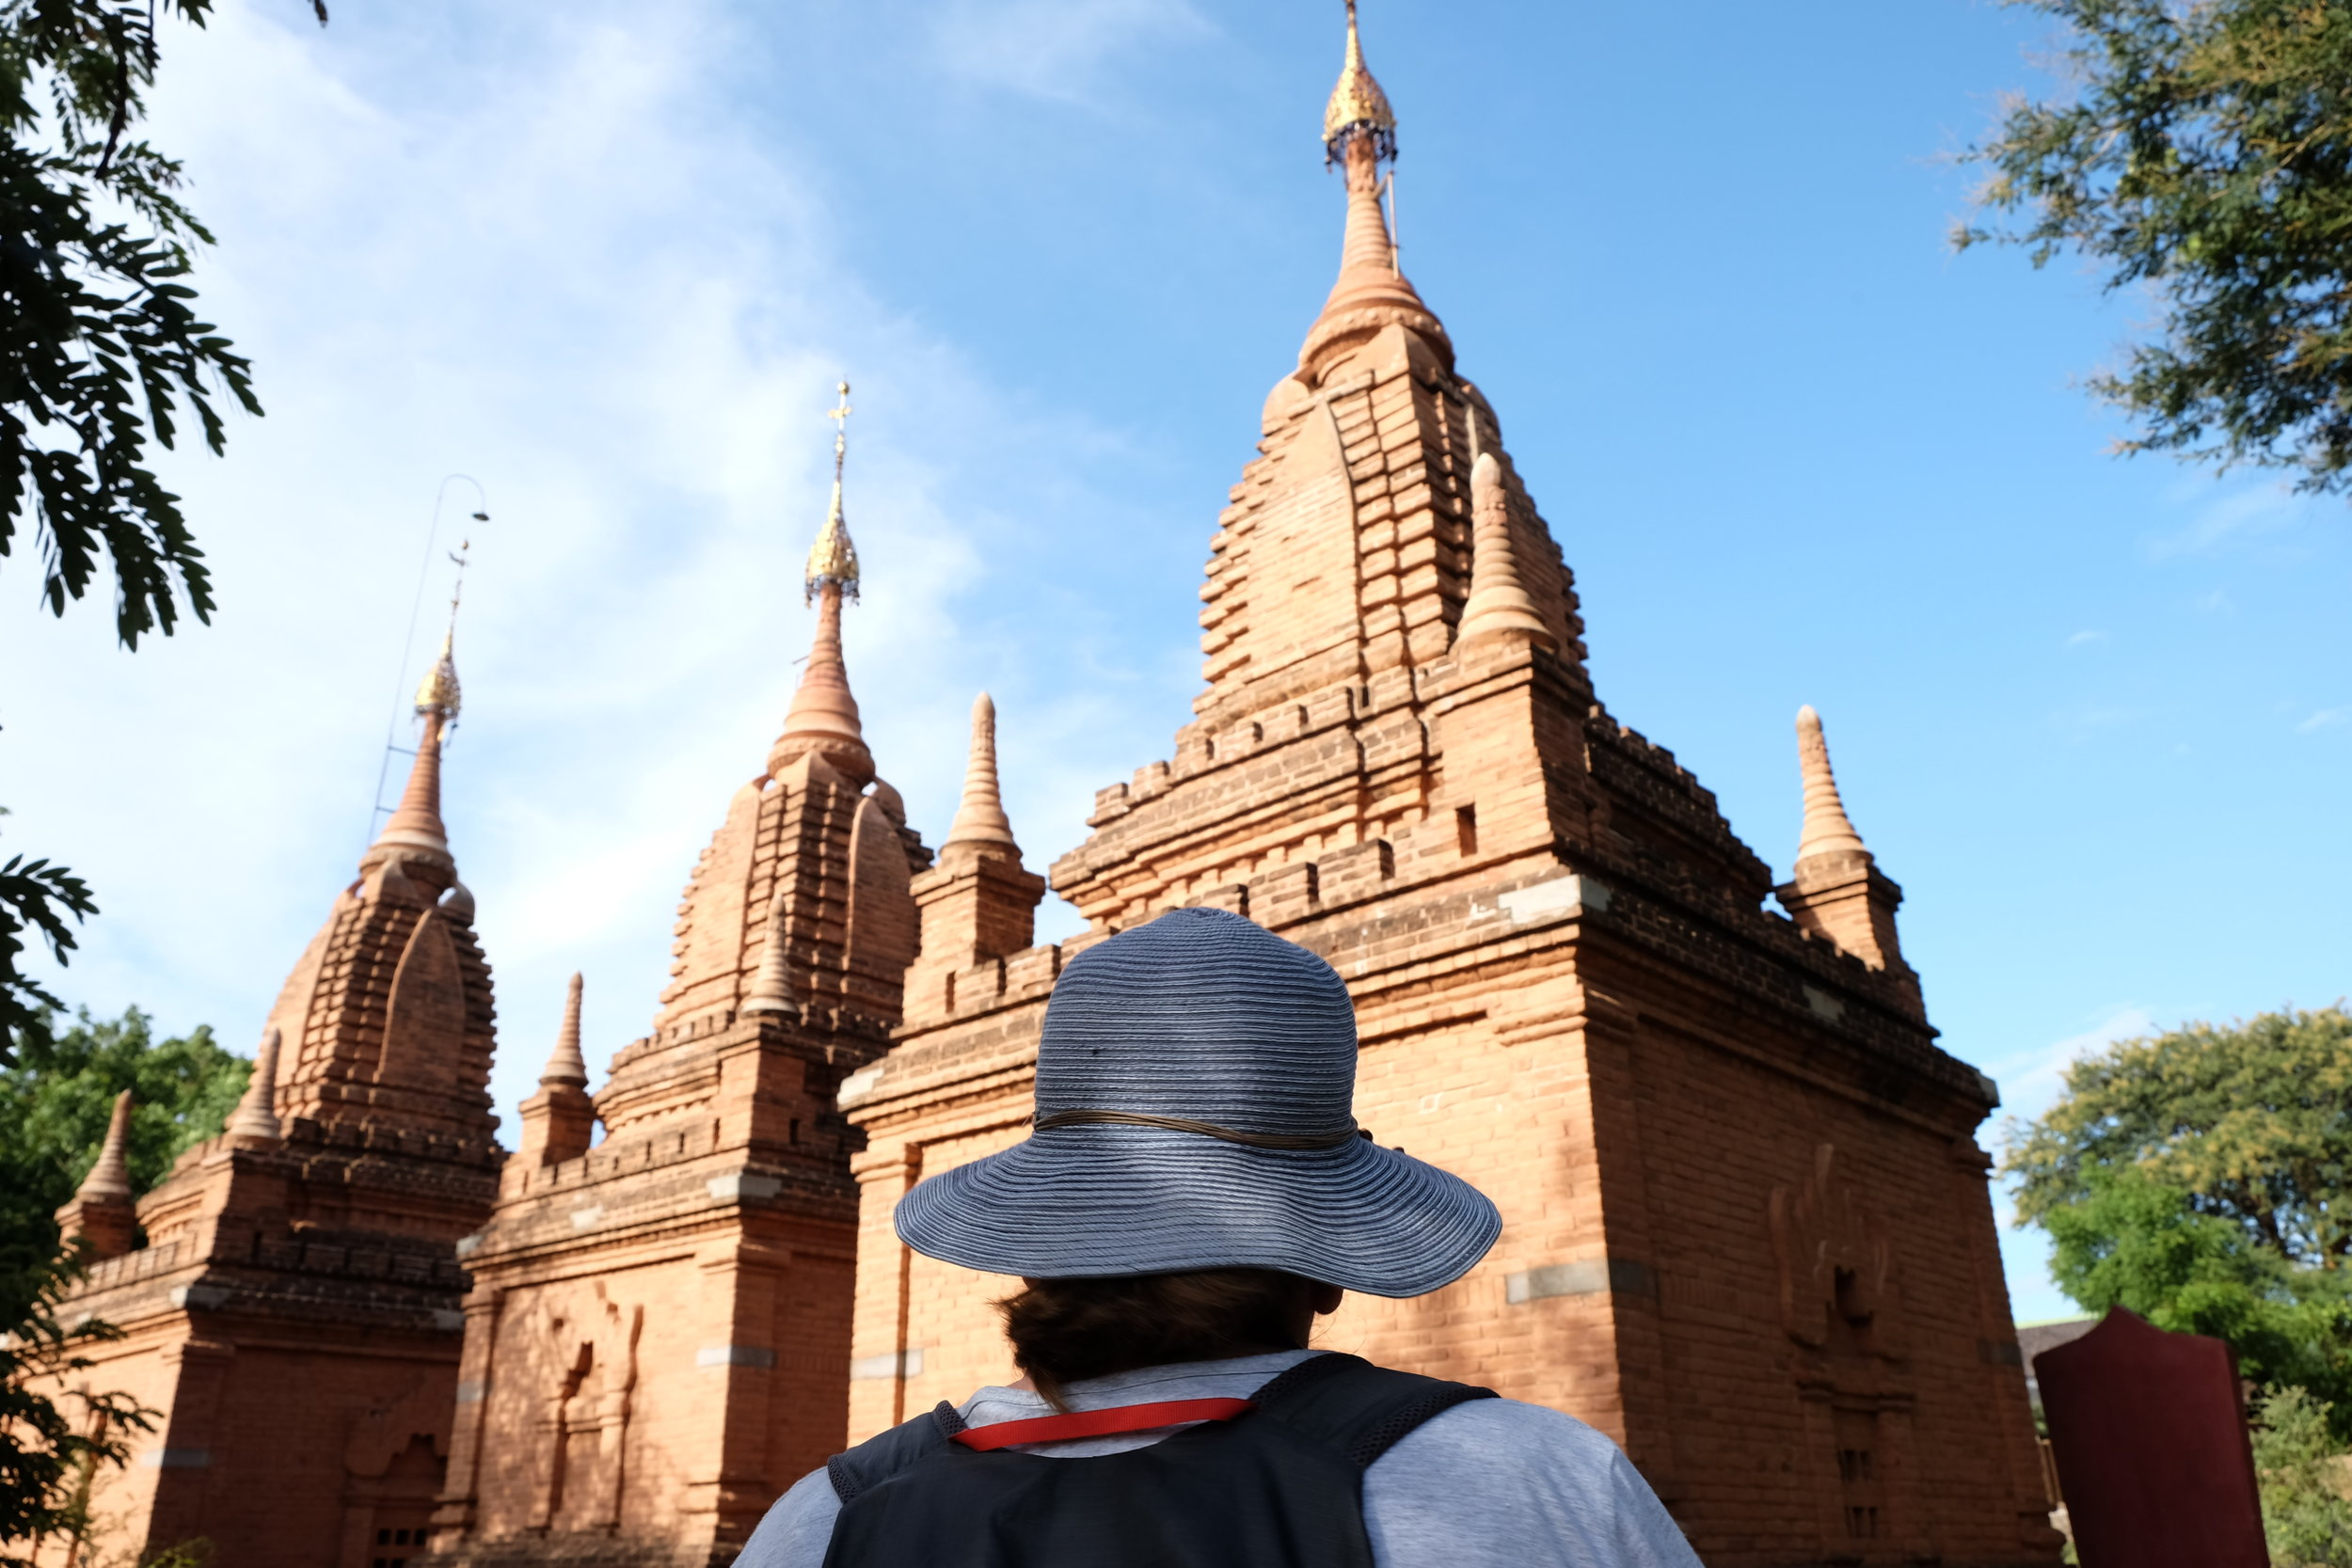 Just a few little stupa between the houses